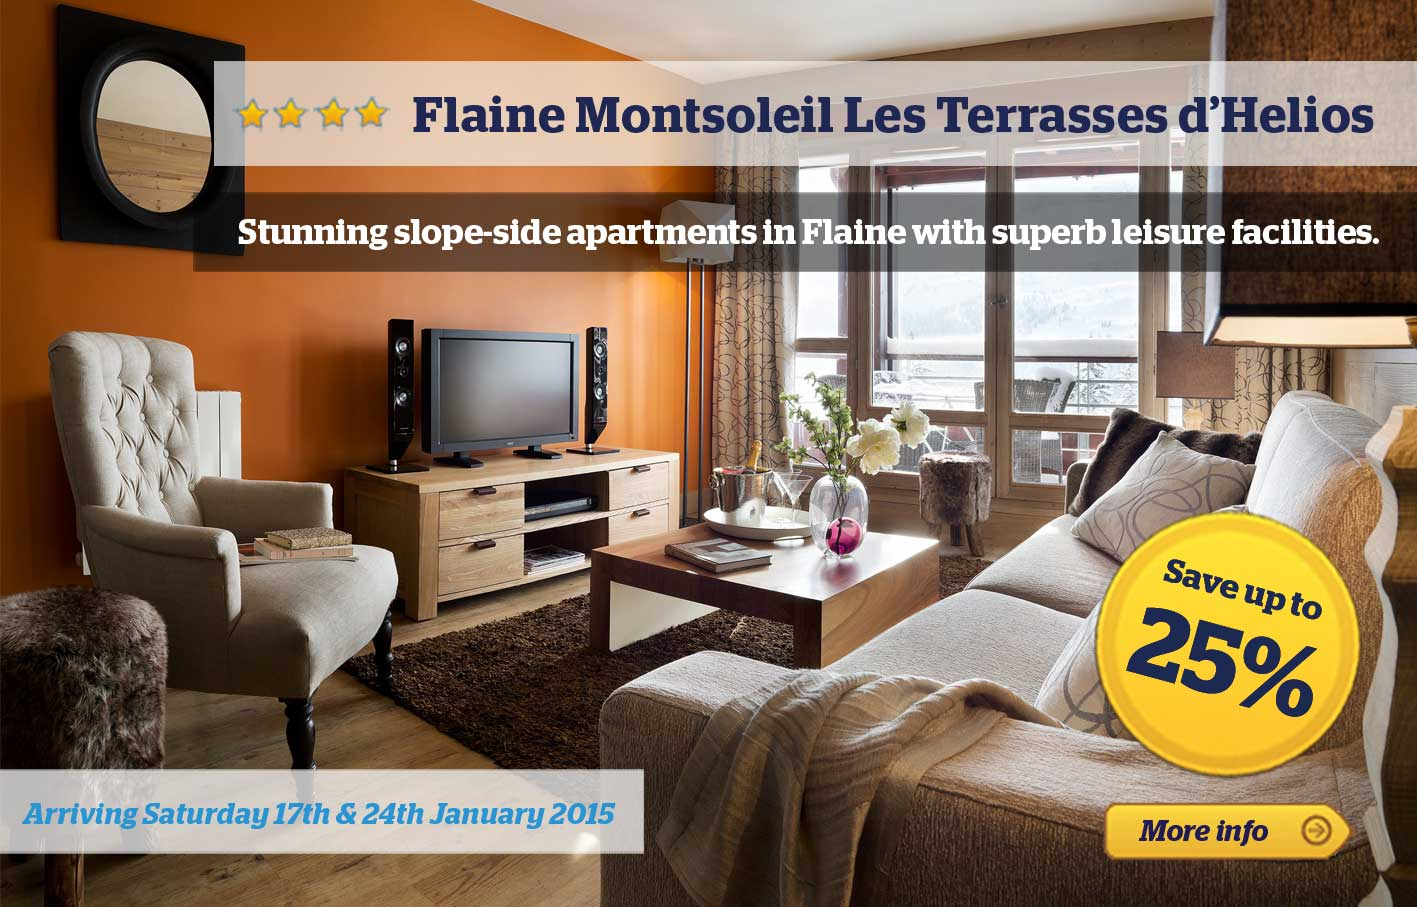 Flaine Montsoleil Offer